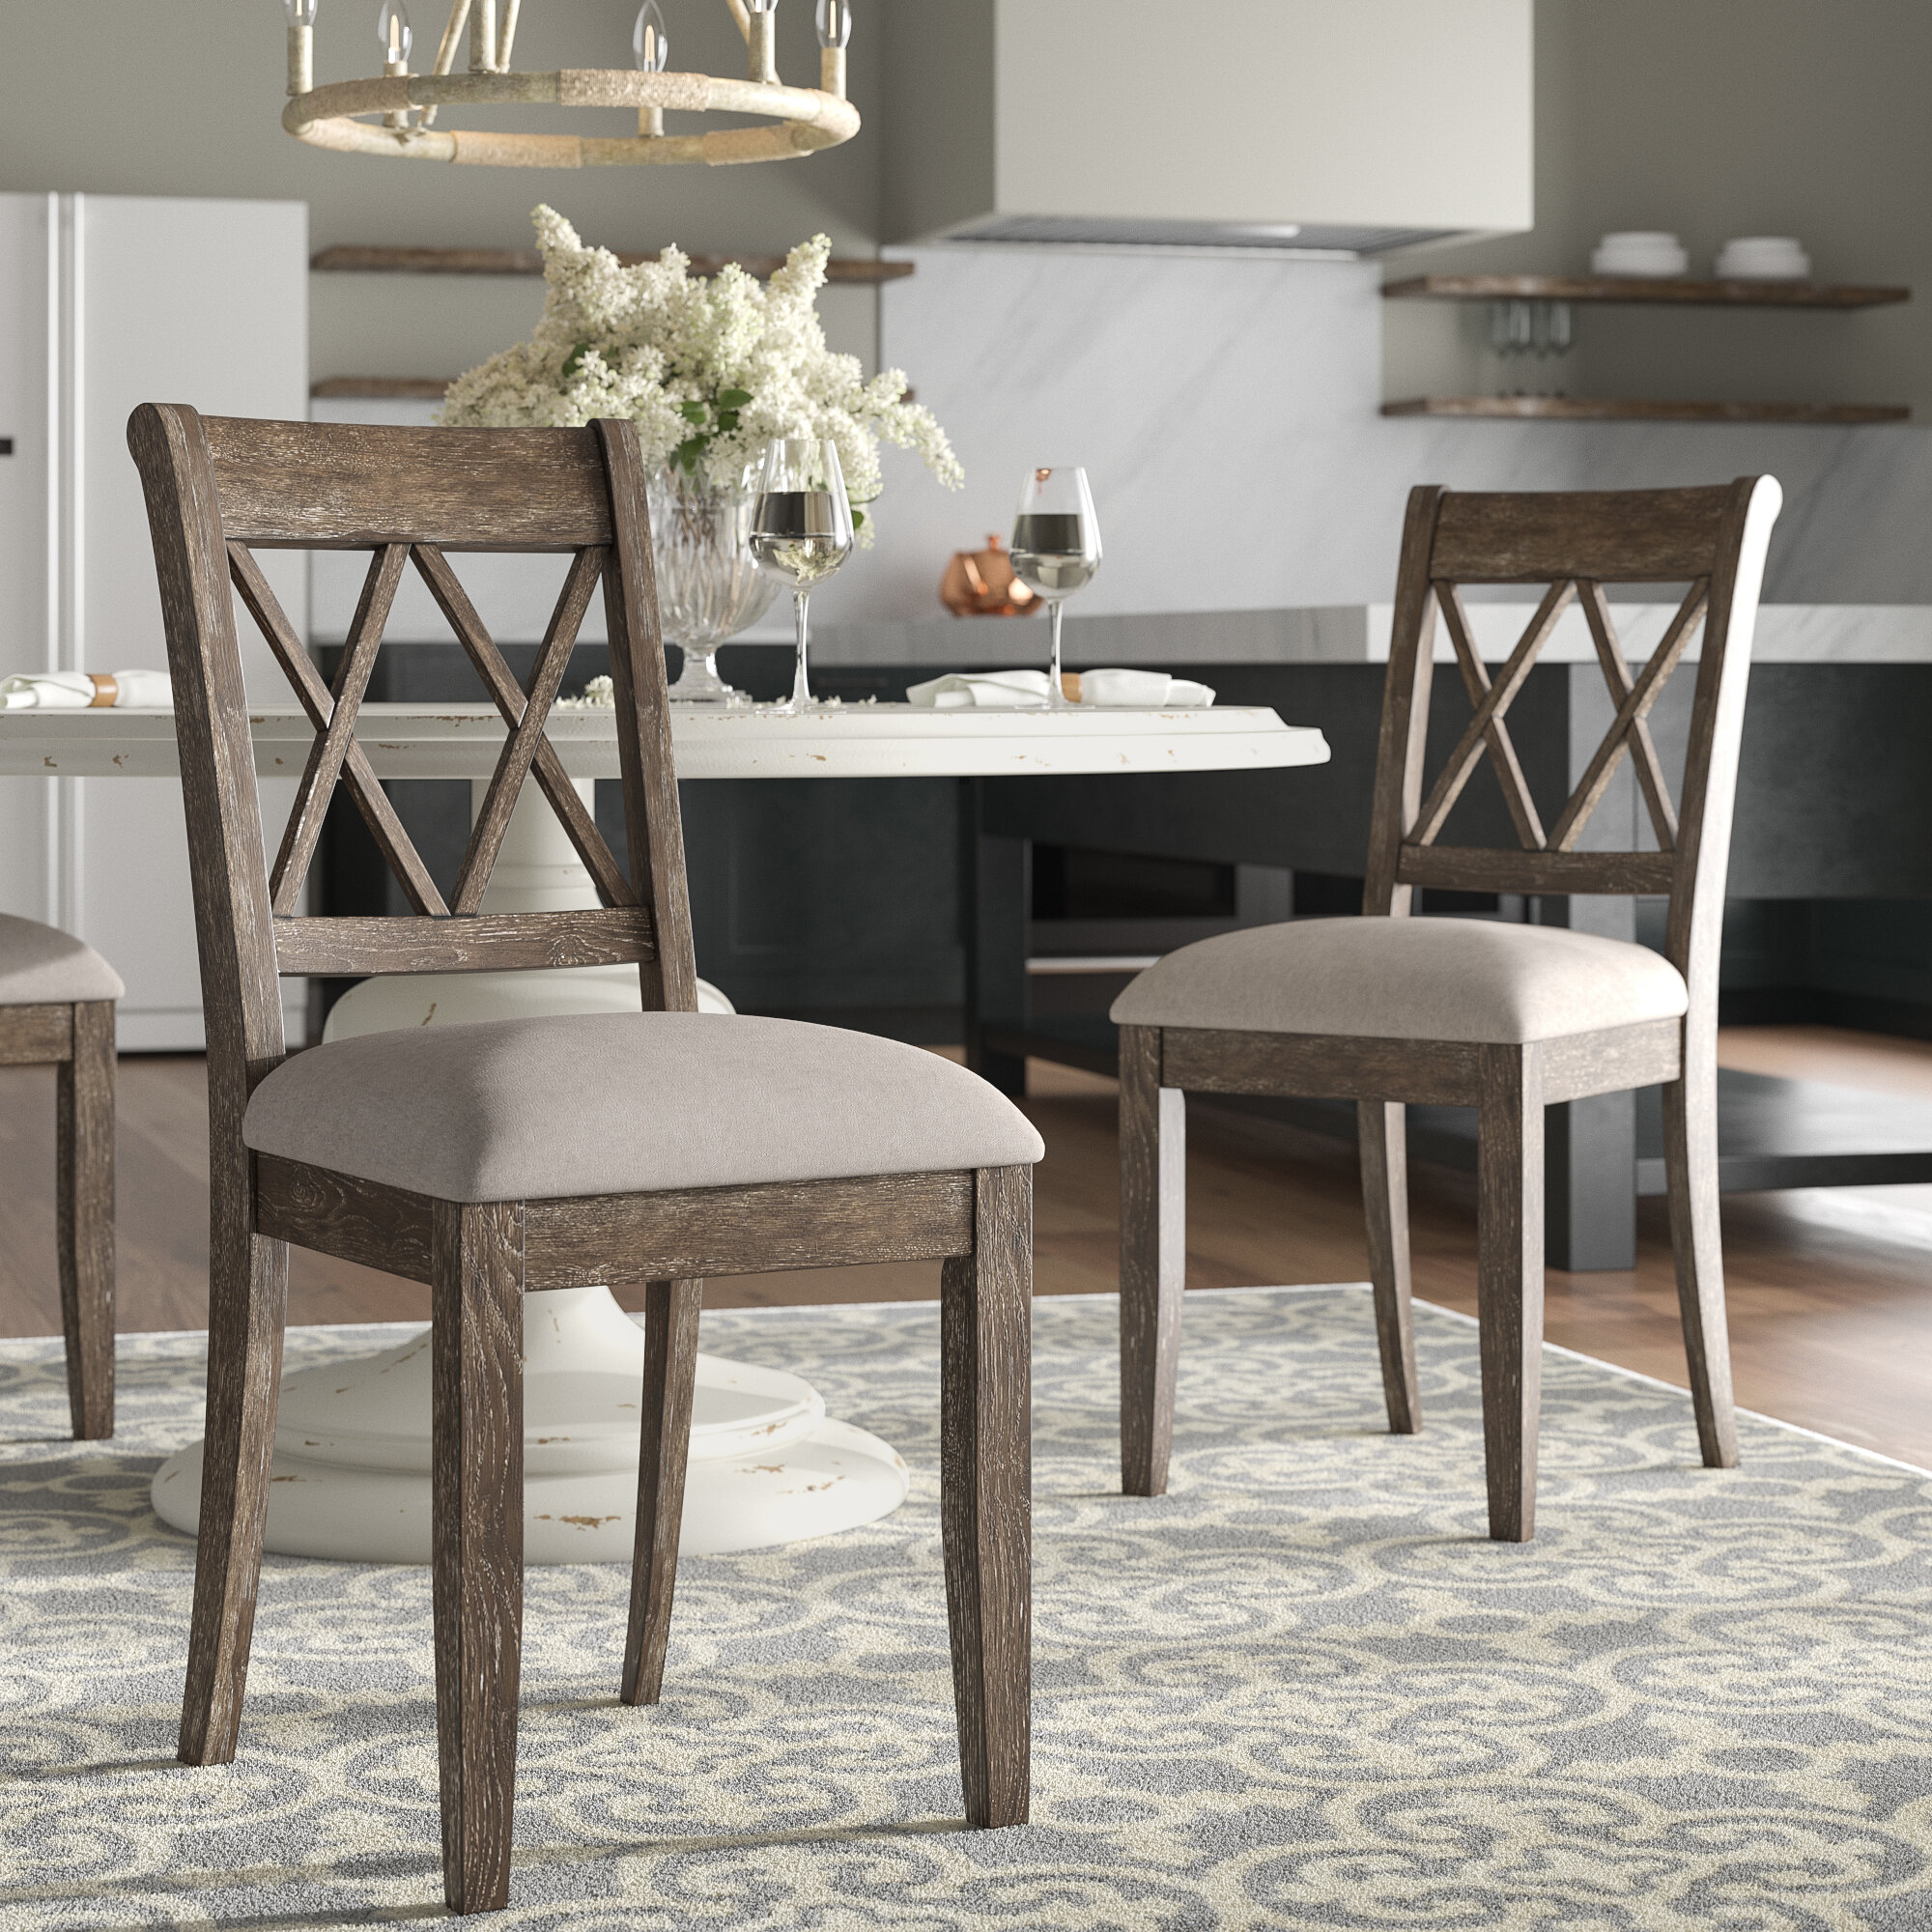 Grayson Braided Chair Pad country farmhouse dining room table kitchen tan gray